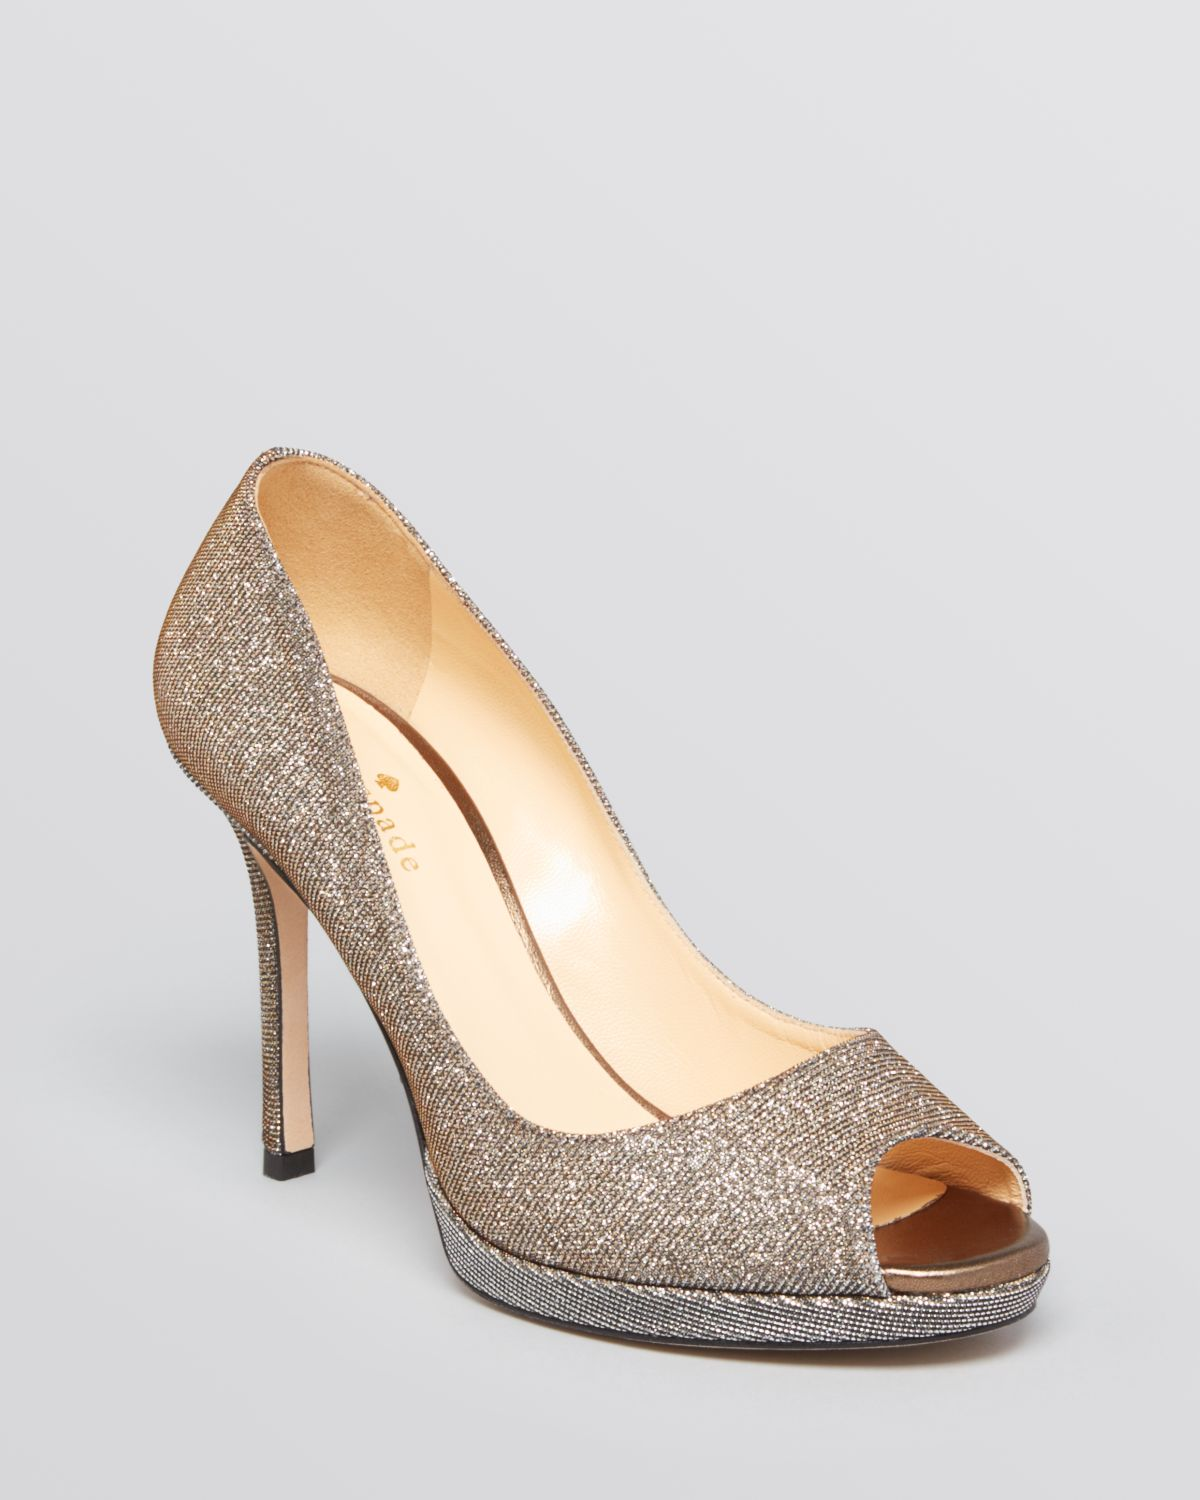 Kate Spade New York Mesh Peep-Toe Pumps cheap sale wiki free shipping with mastercard cUvcgx